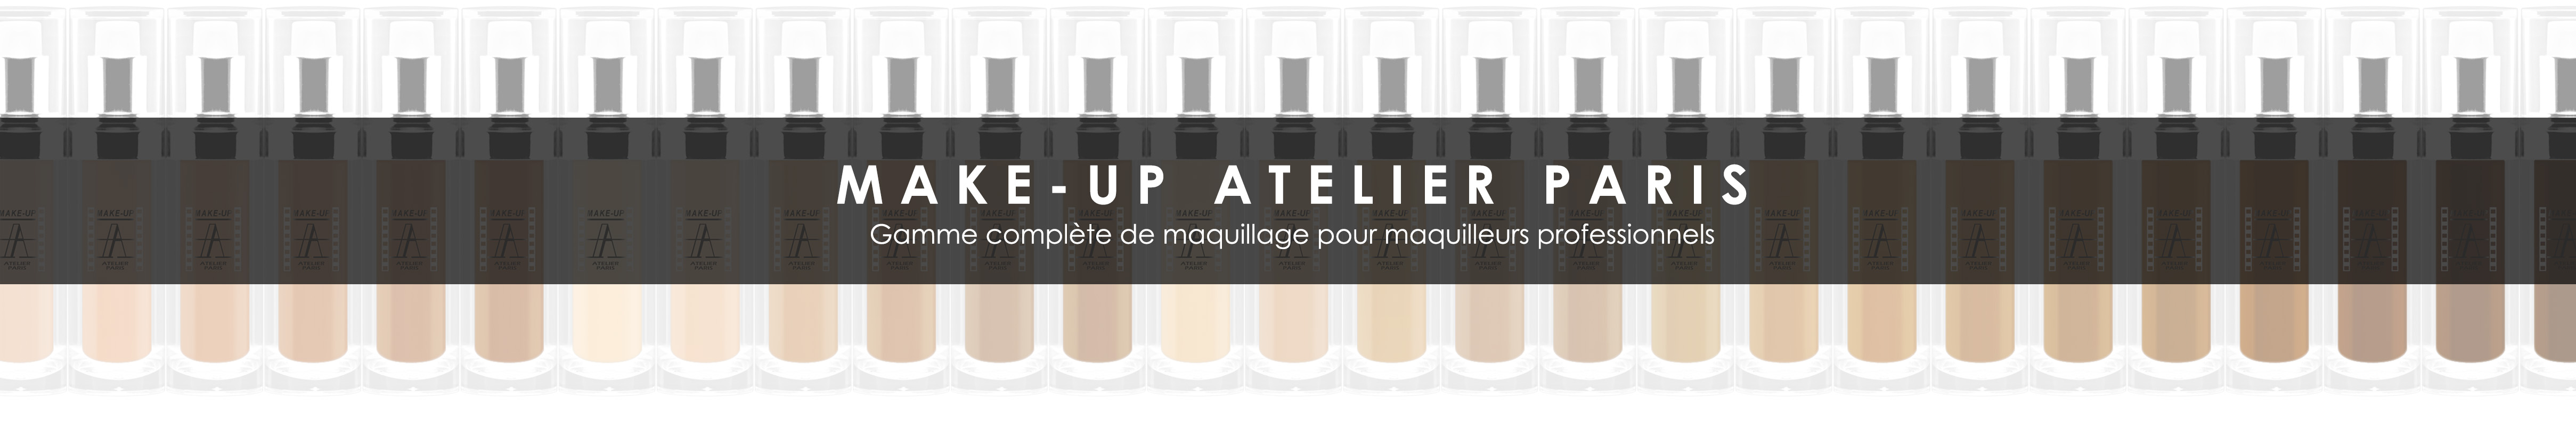 MAKEUPATELIERPARIS.jpg